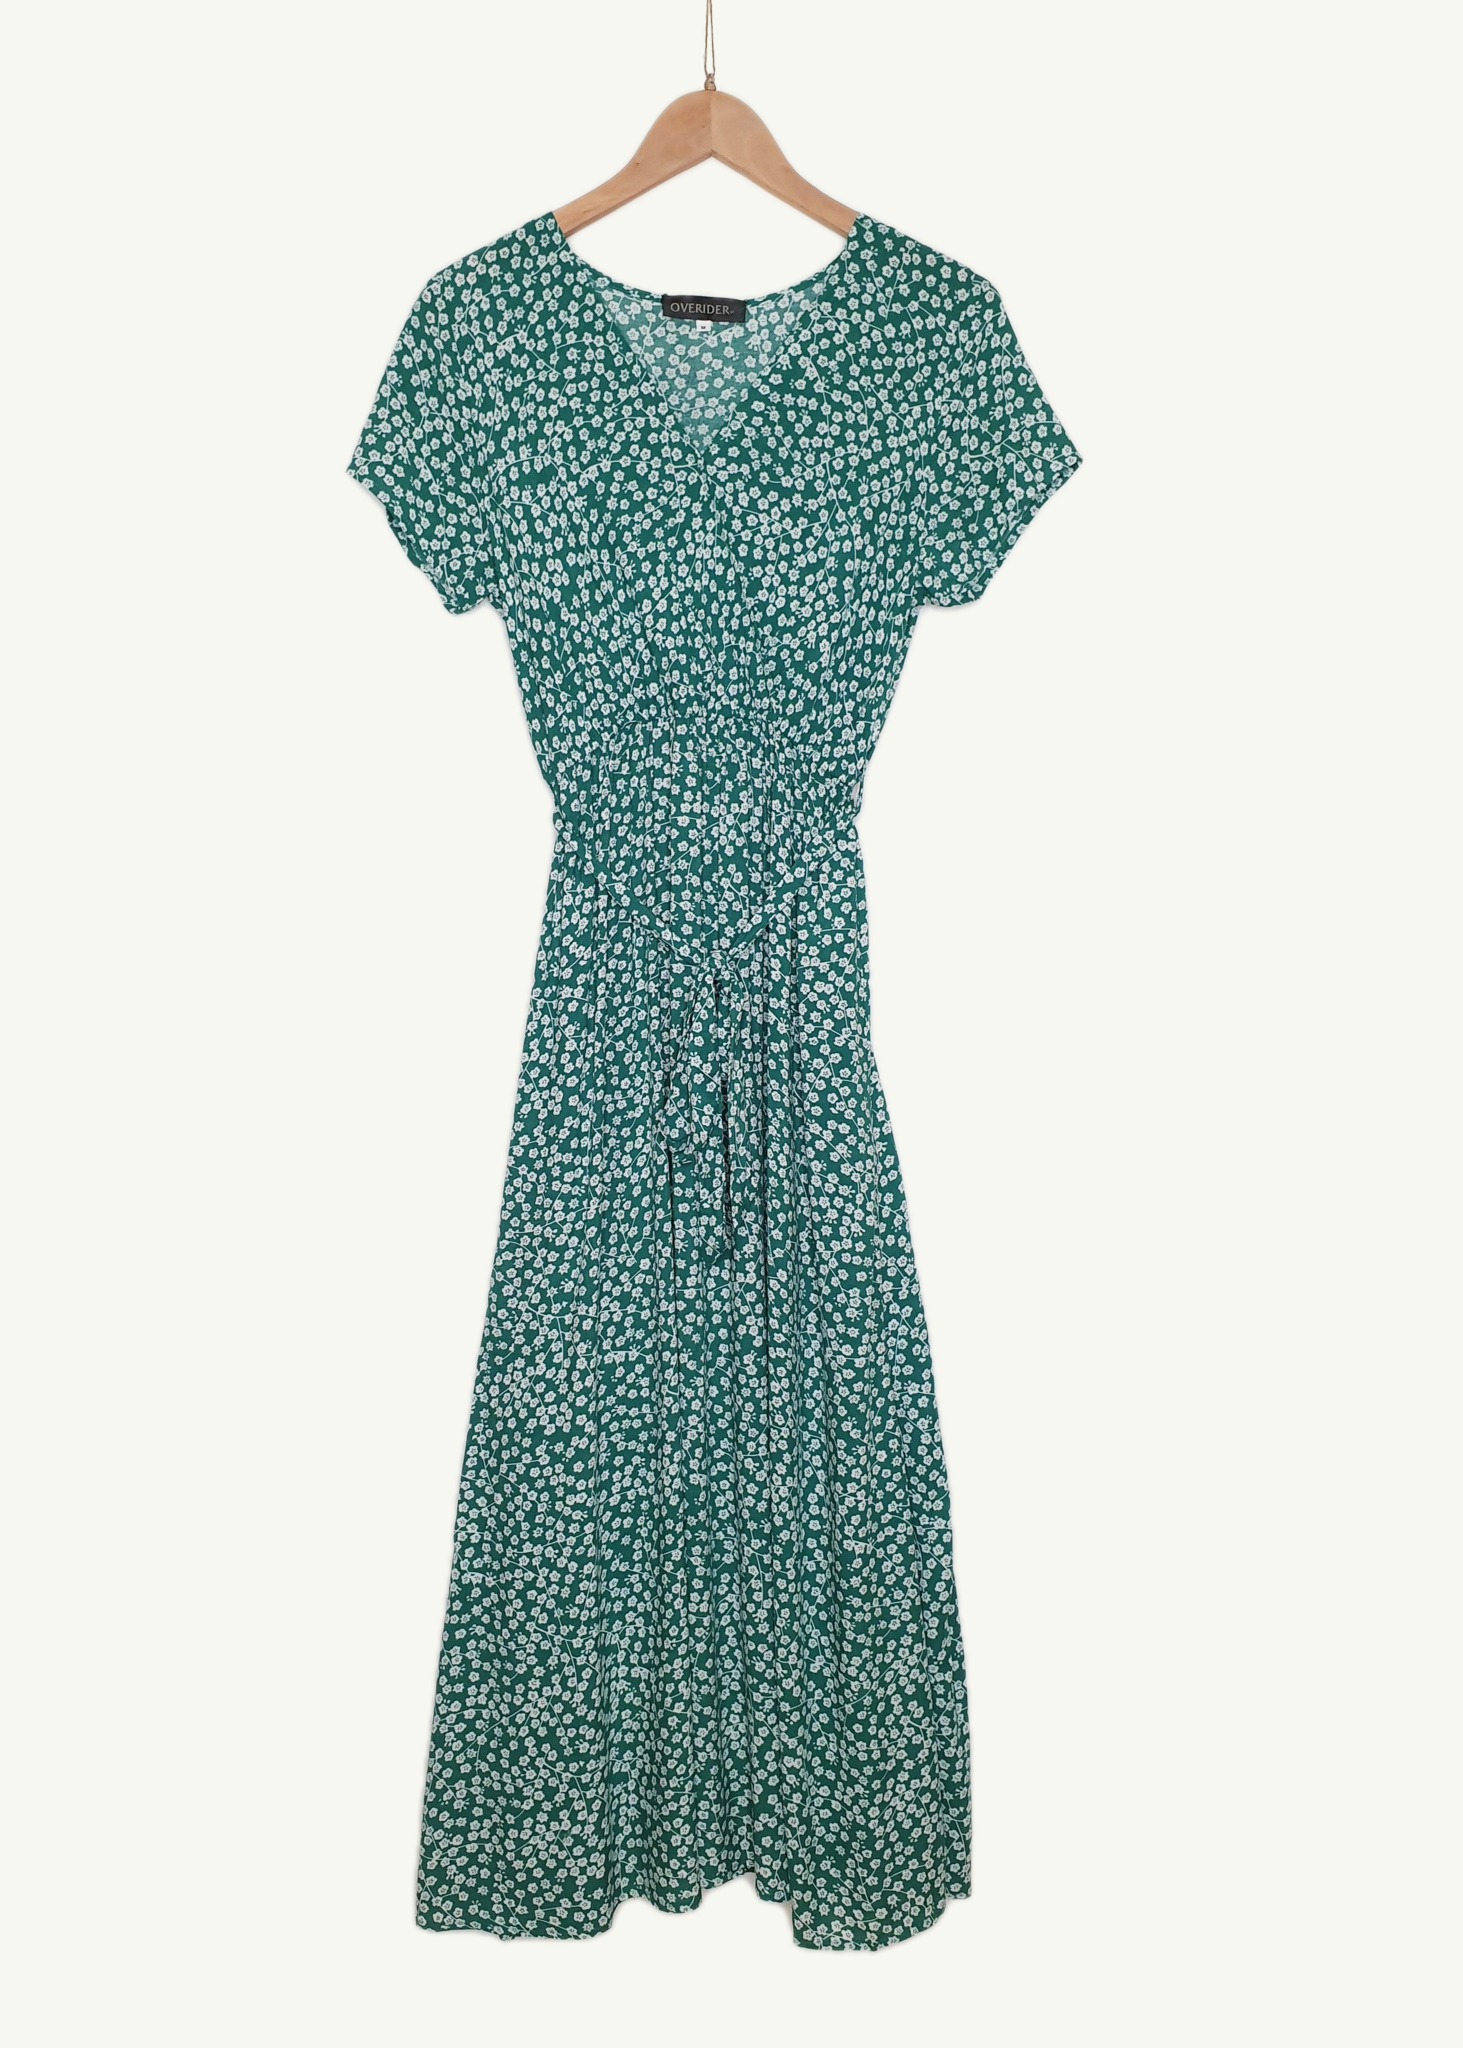 MANON - Floral Cotton Dress - Green